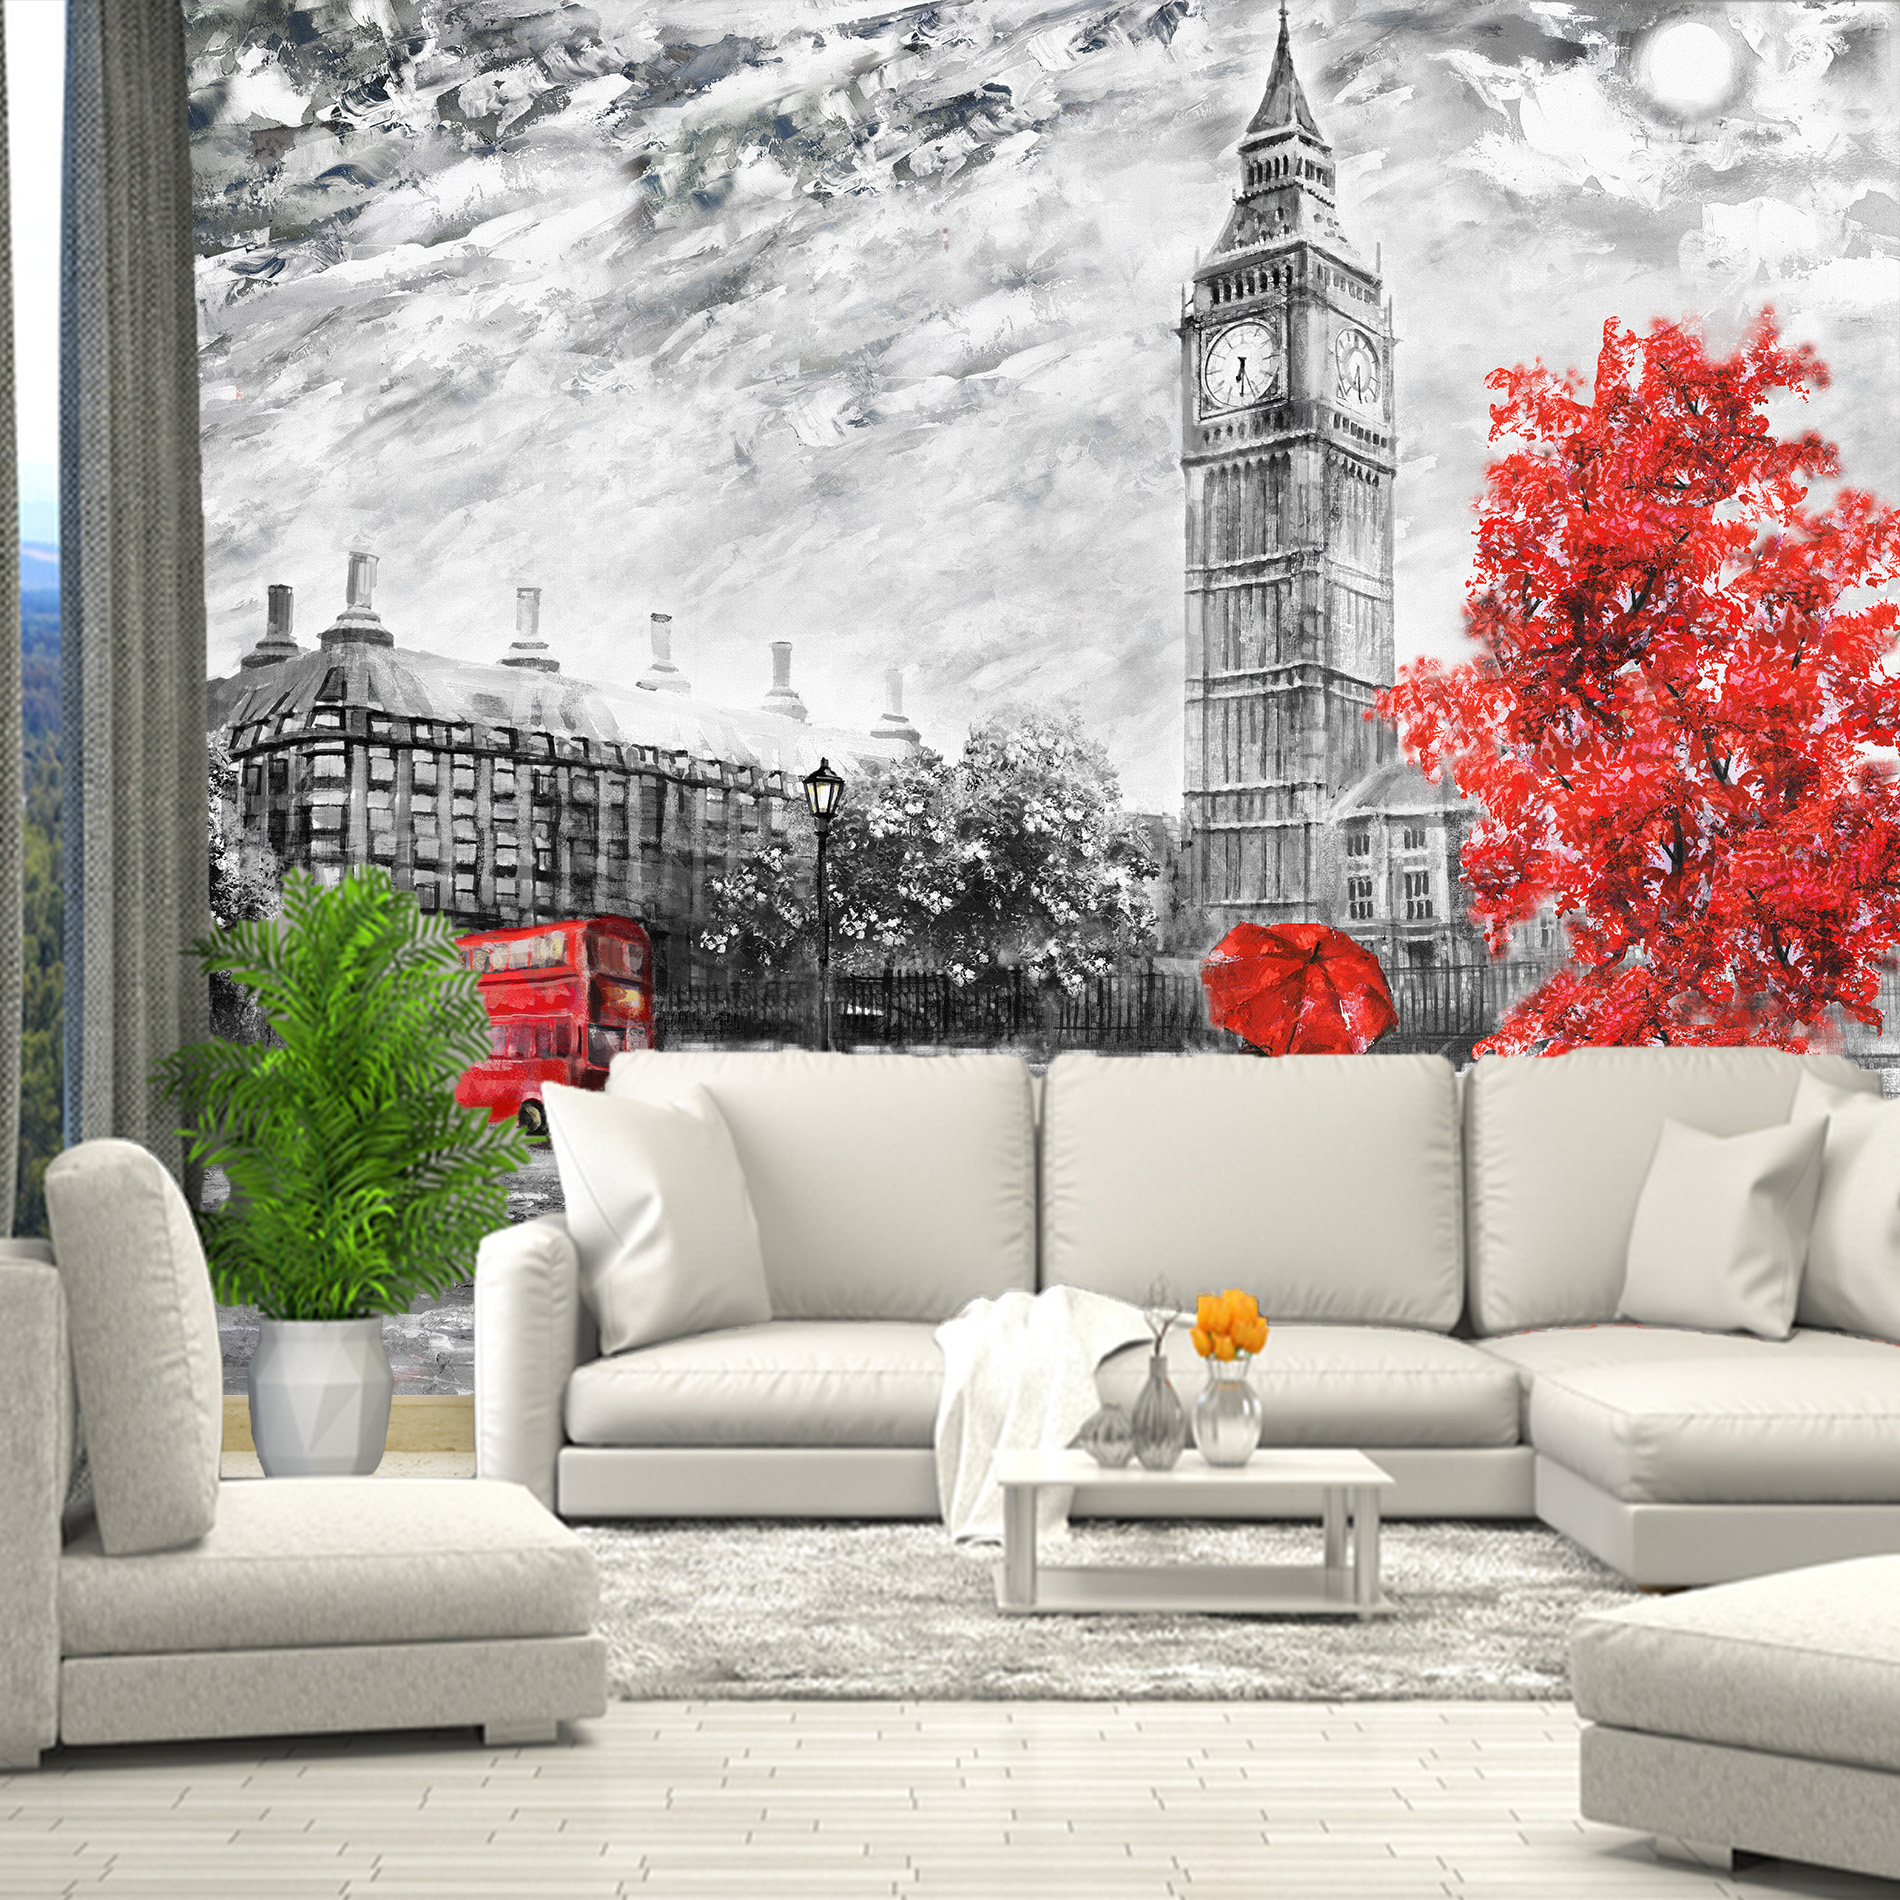 3D Photo Wallpaper Pattern London Big Ben Wall Paper, Hall, Kitchen, Bedroom, Children's, Photo Wallpaper Enhance Space